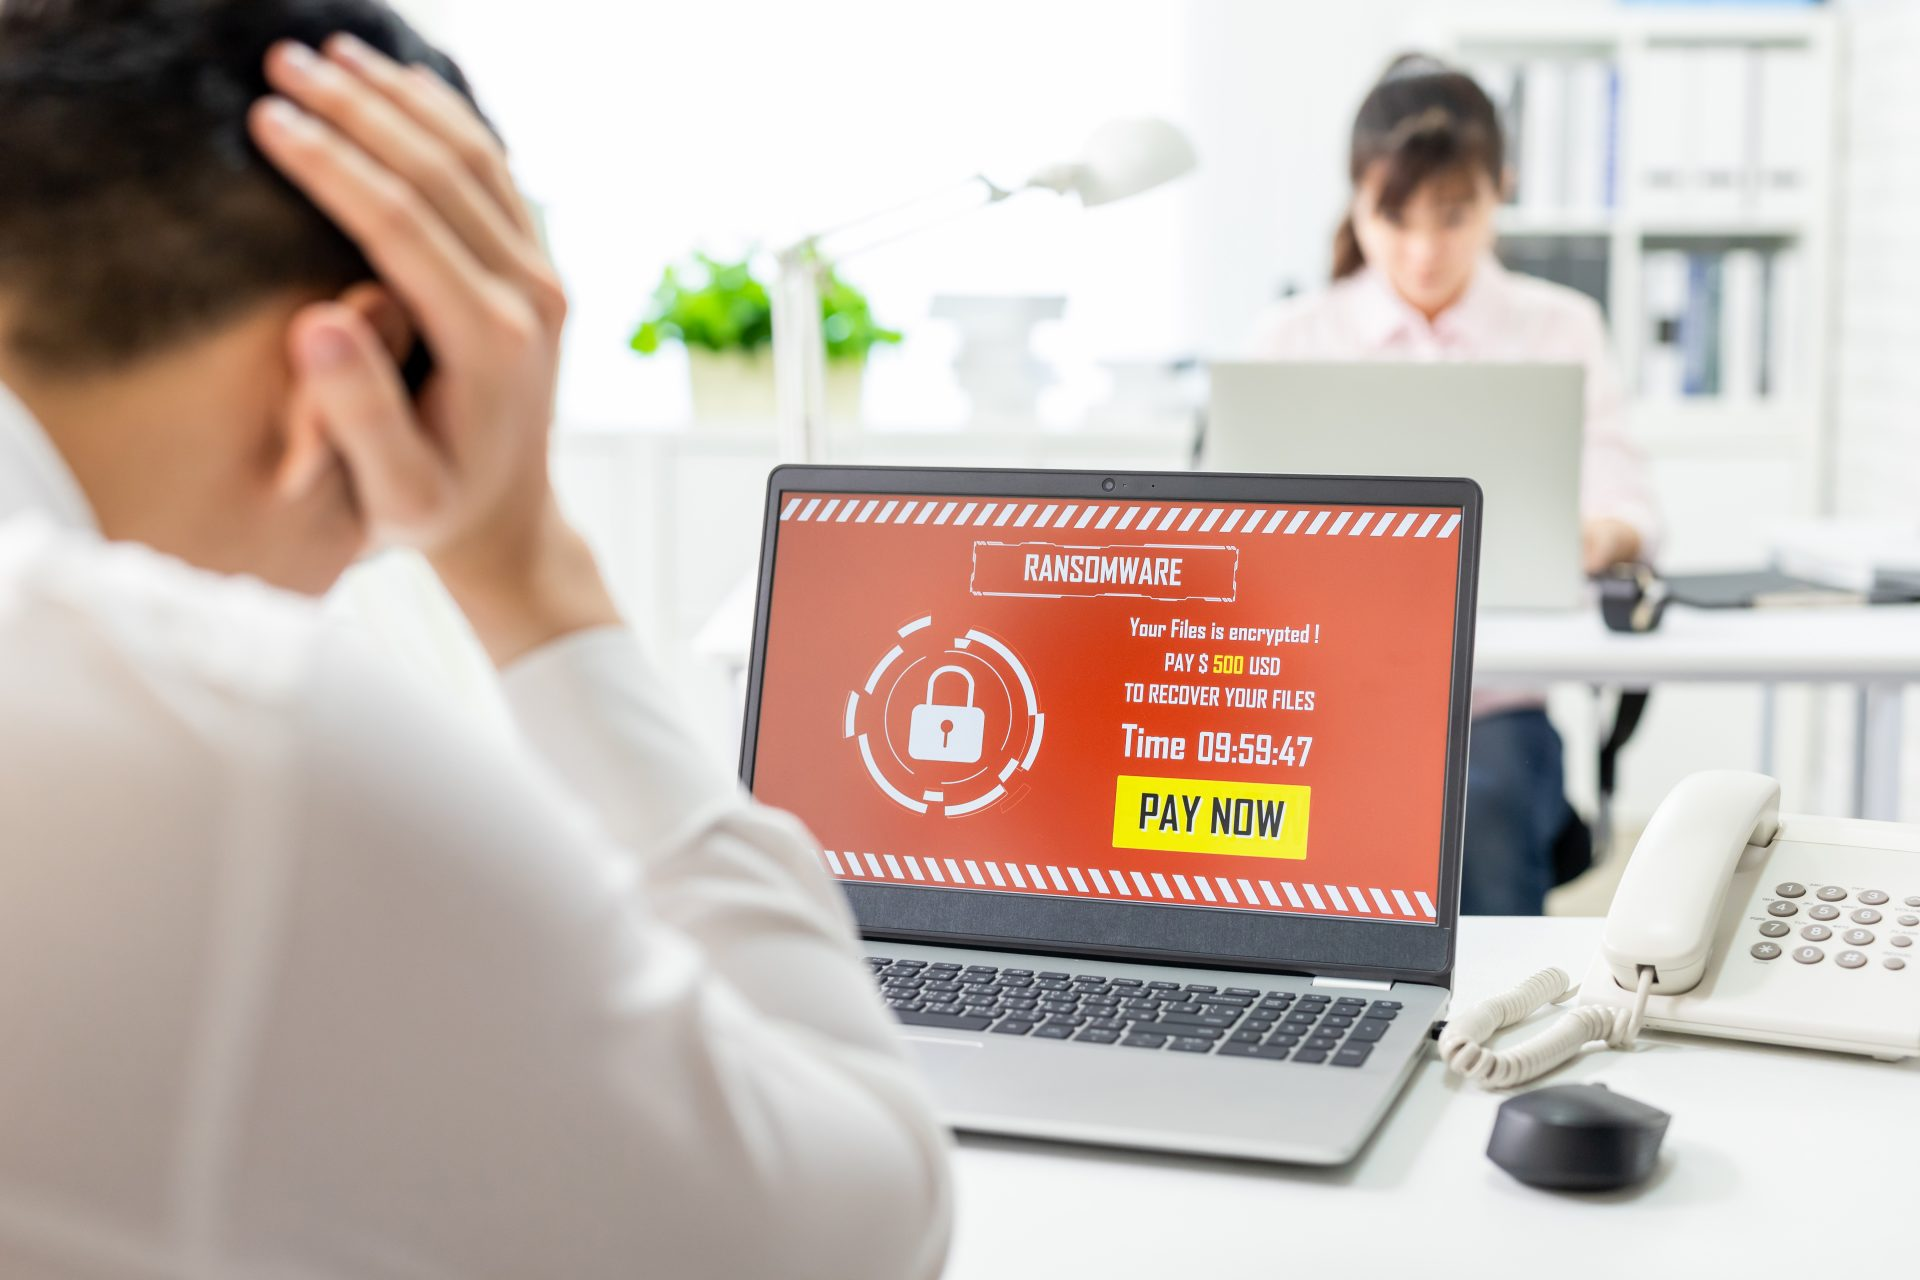 Ransomware attack on laptop